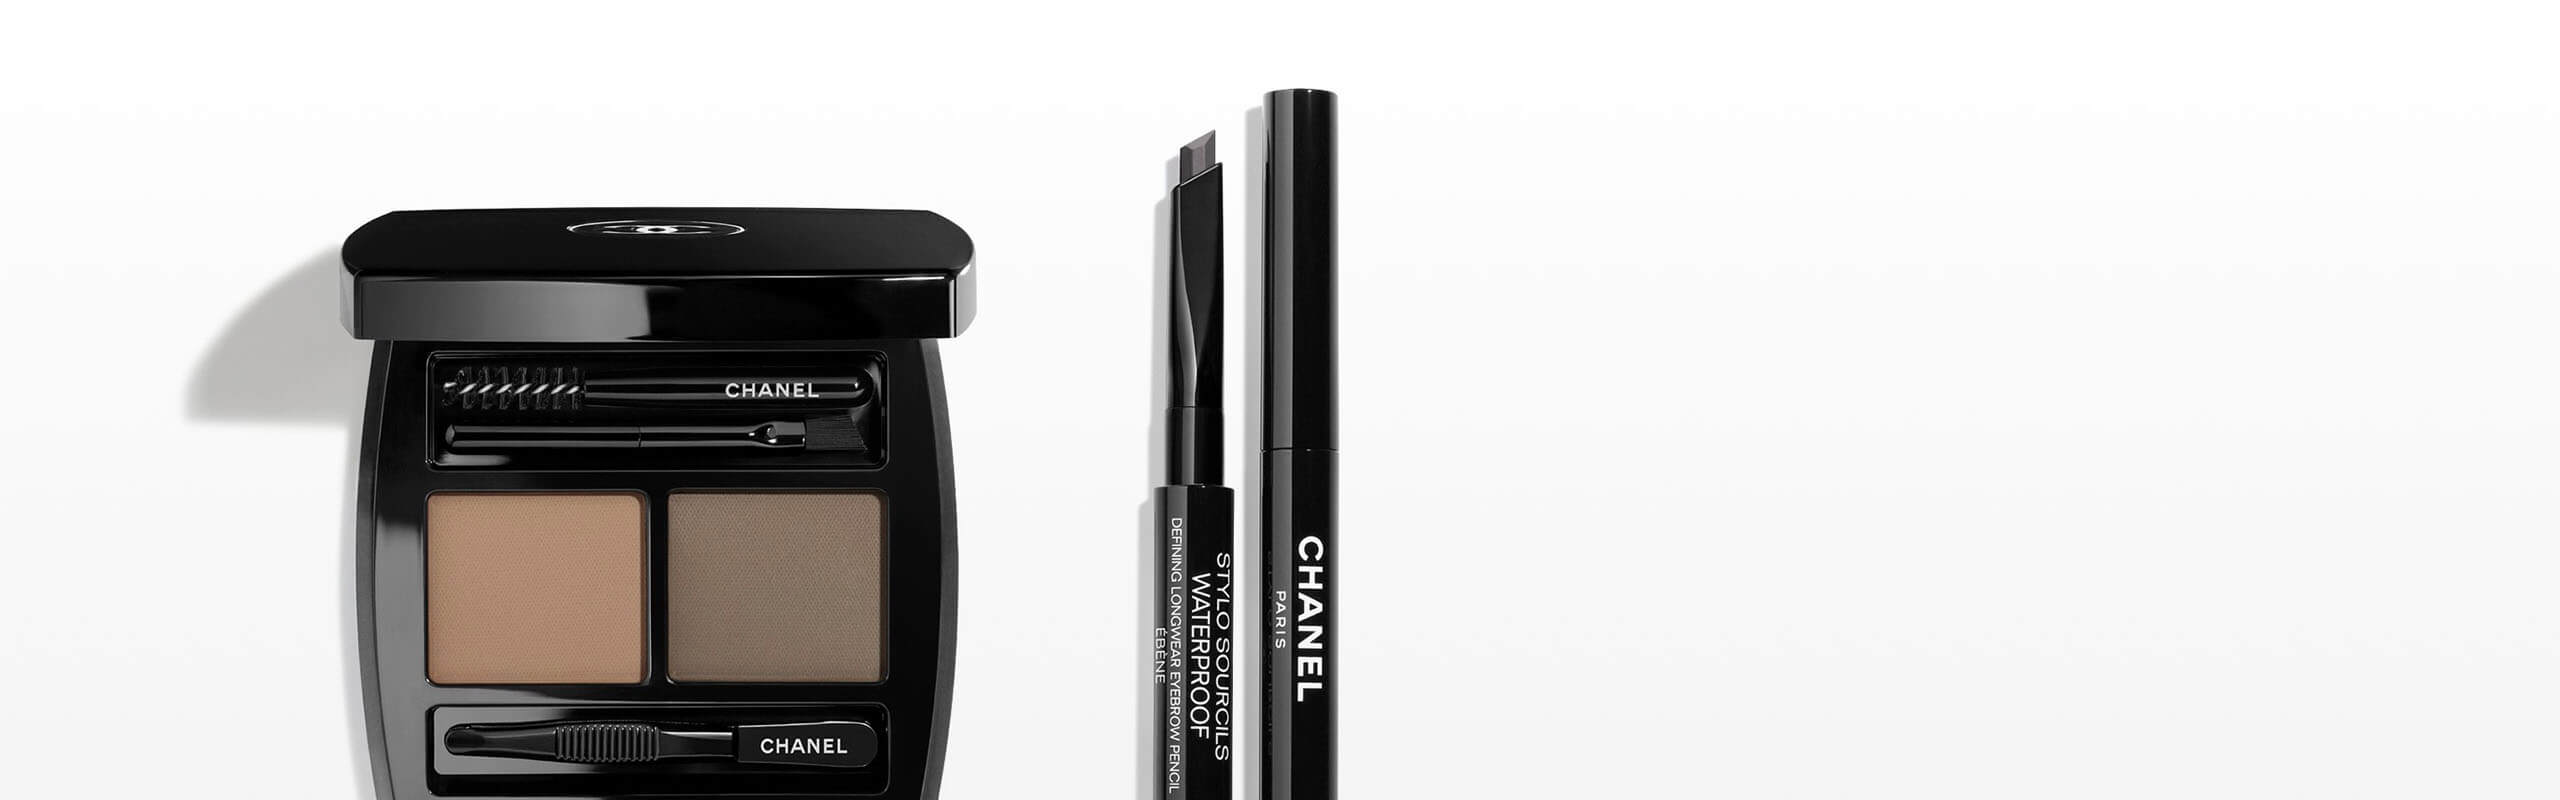 Brows - Makeup | CHANEL